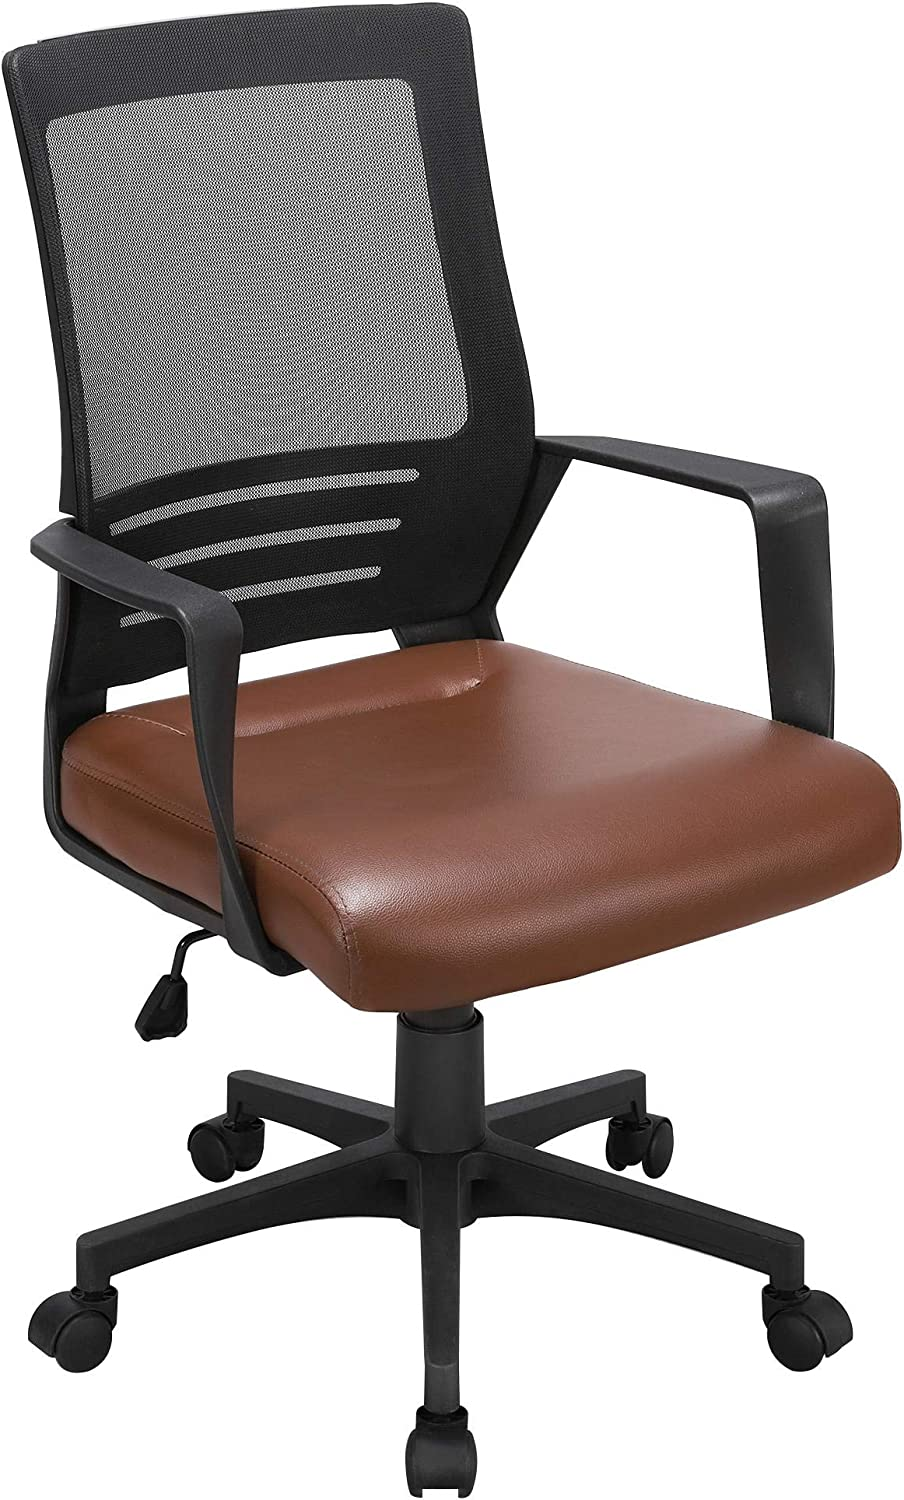 YAHEETECH Office Desk Chair Mesh Rolling Lumbar Support Computer Chair with Leather Padded Seat, Ergonomic Adjustable Task Chair Brown